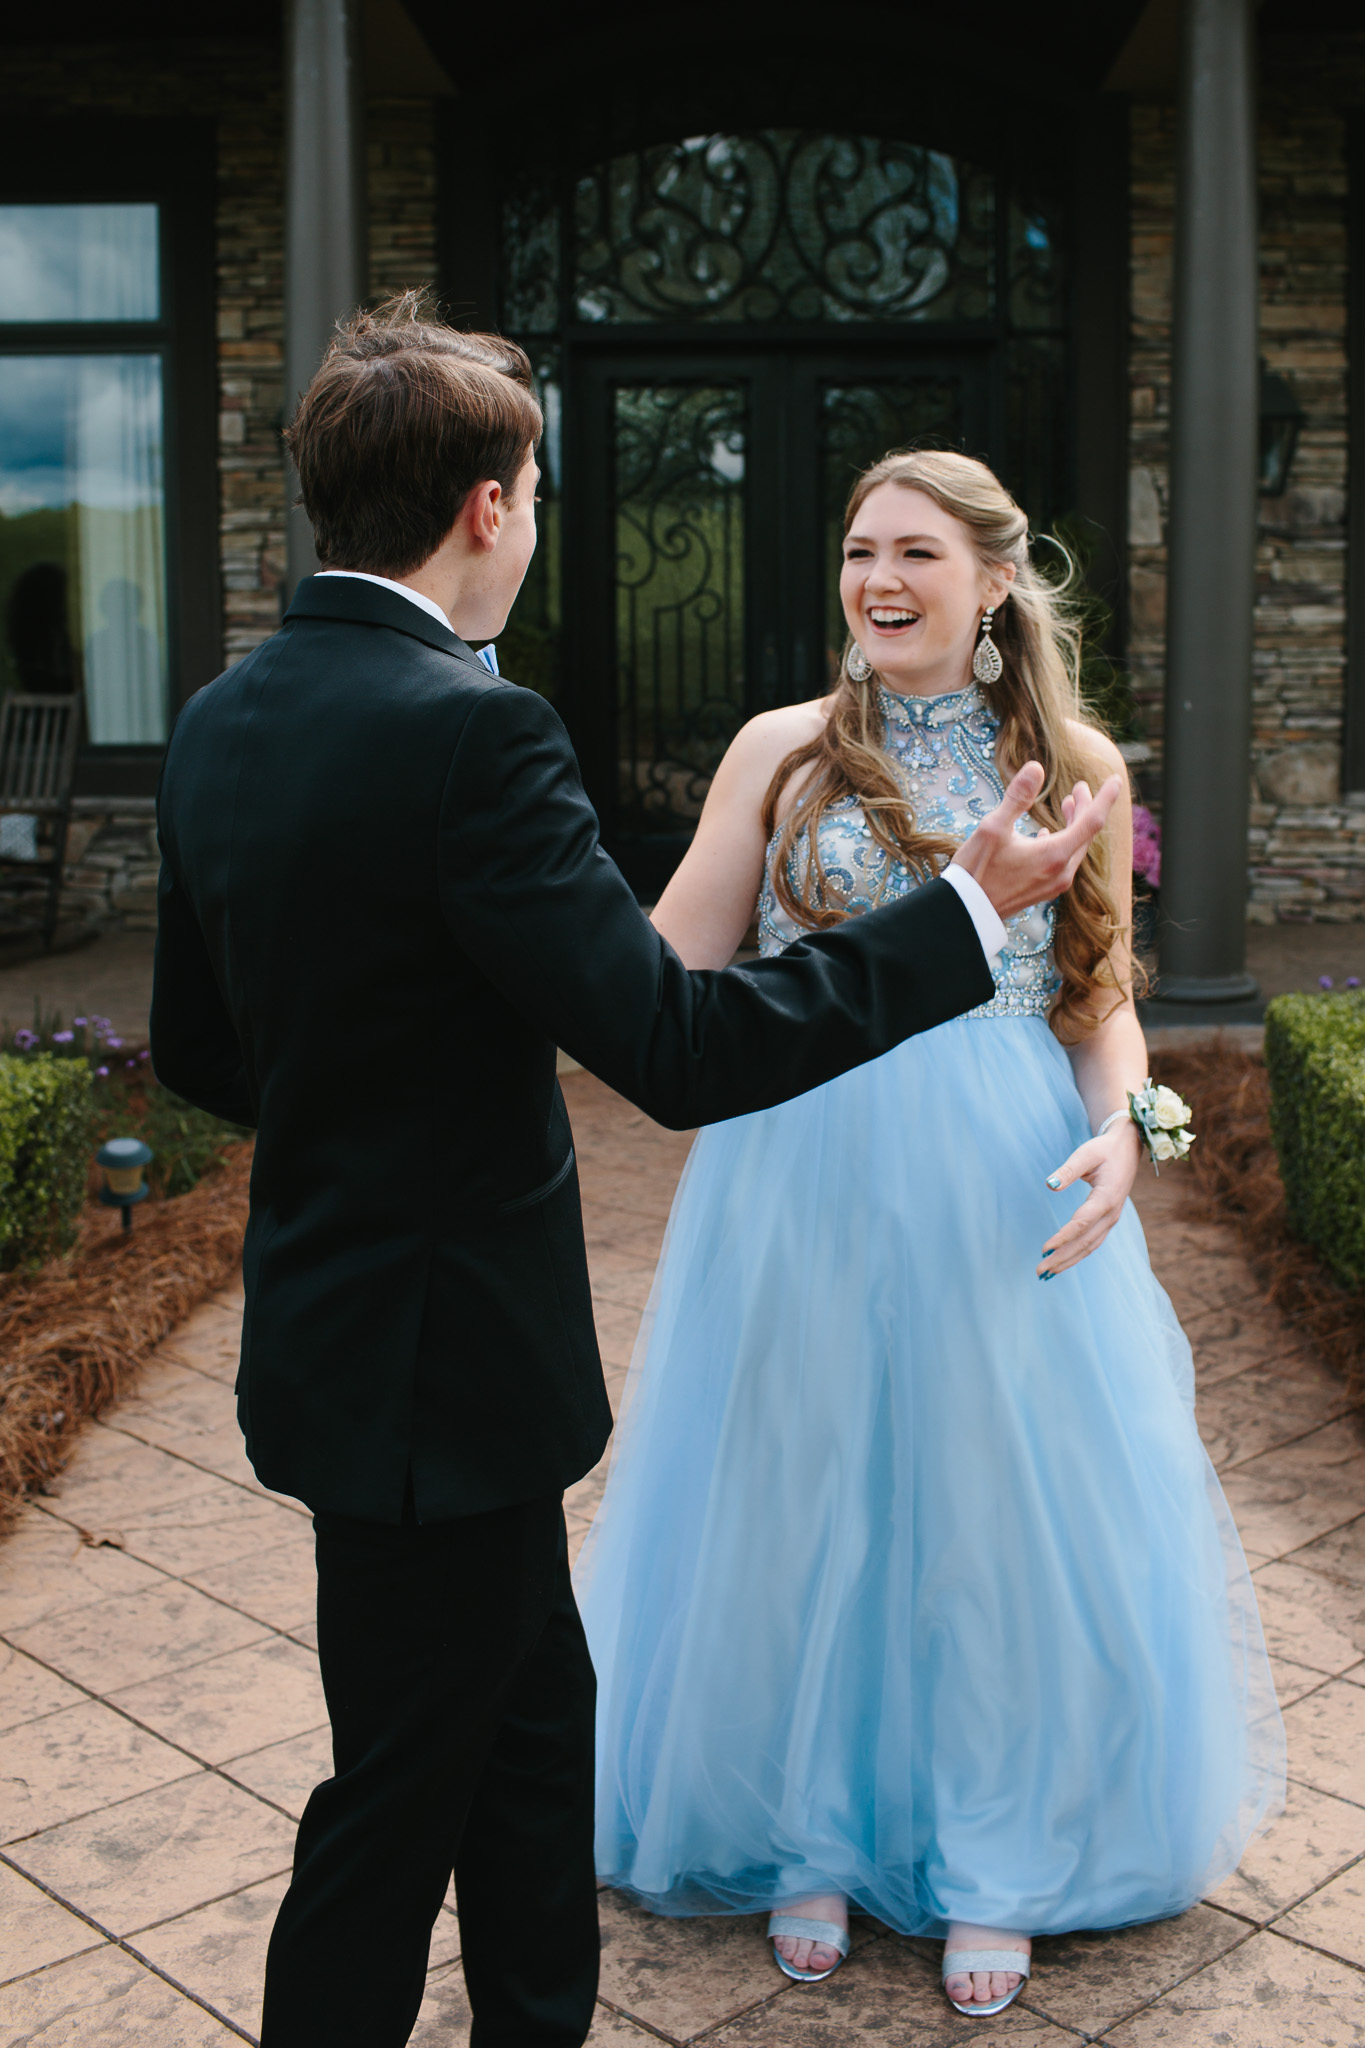 jennichandlerphotography_2017Prom_WEB-7.jpg